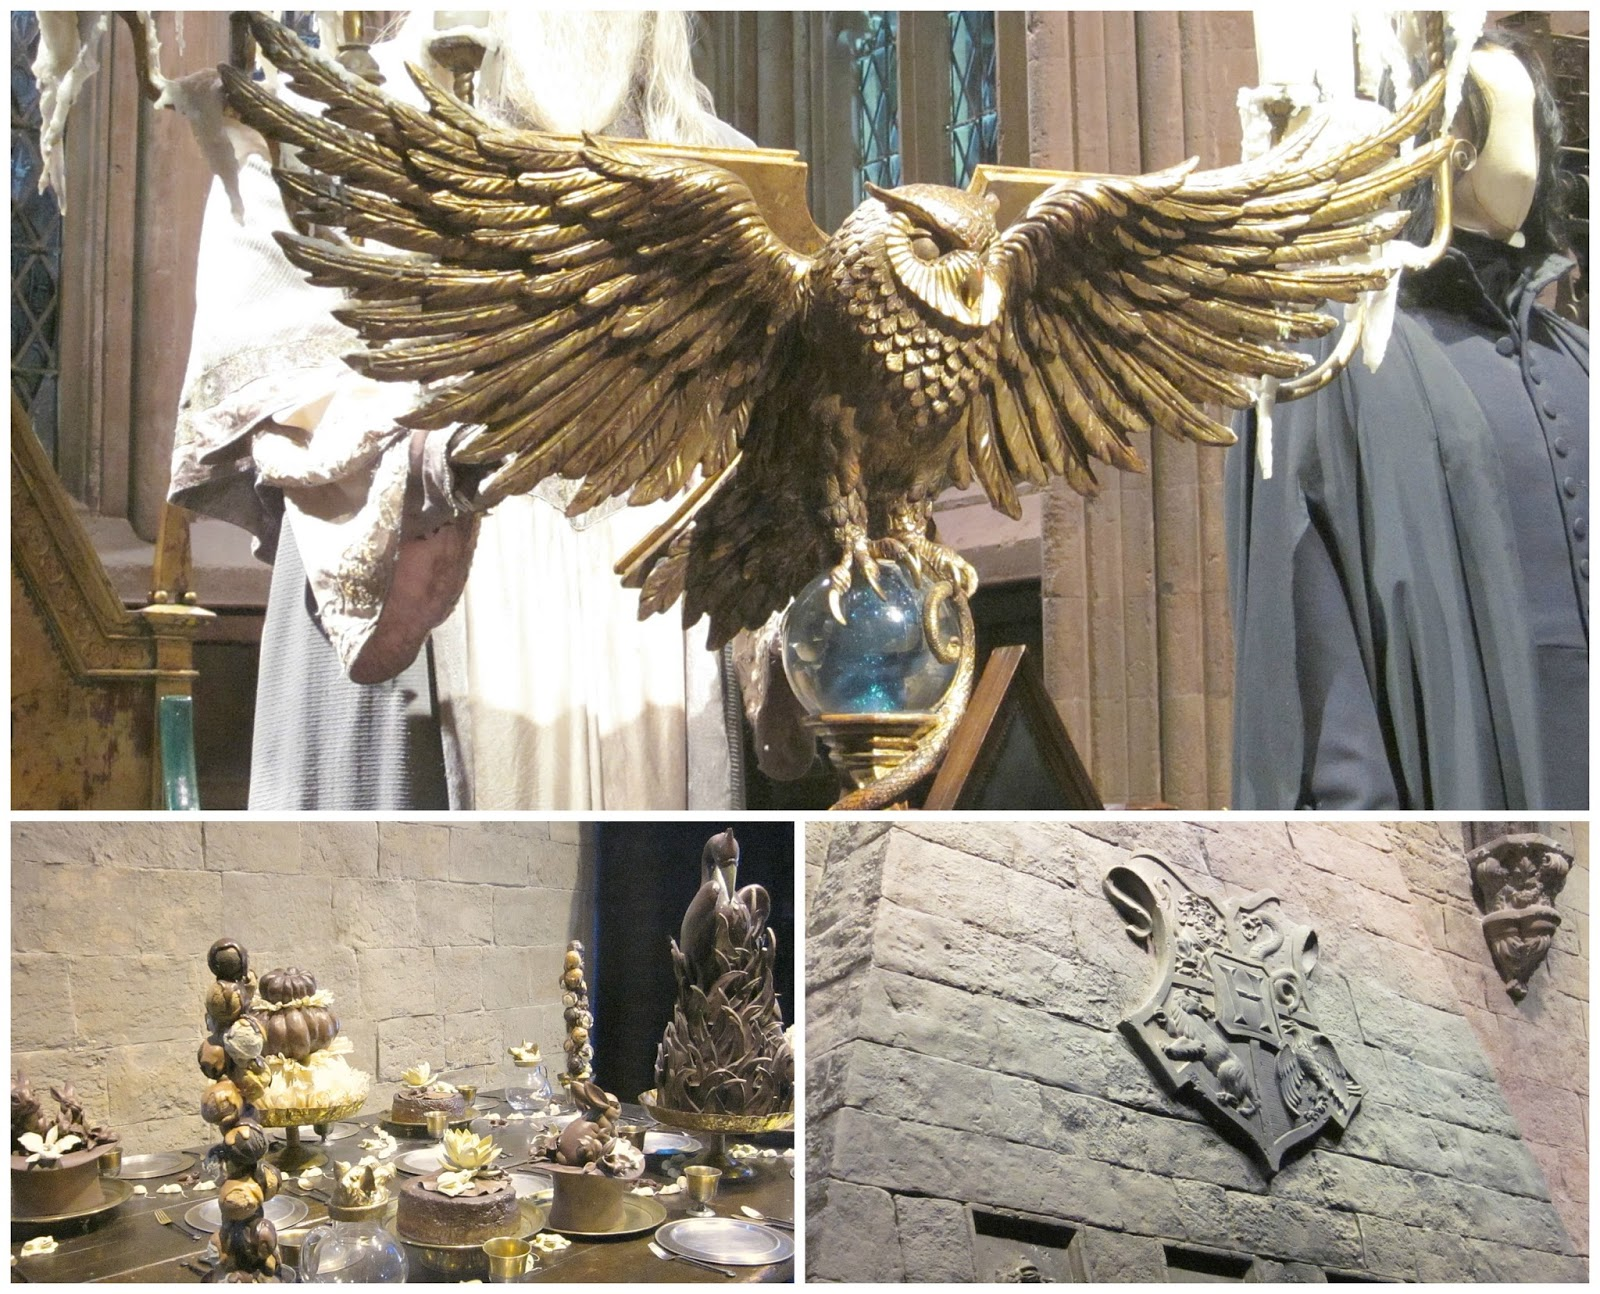 The Great Hall at The Making Of Harry Potter Warner Brothers Studio Tour including Dumbledore's Lectern